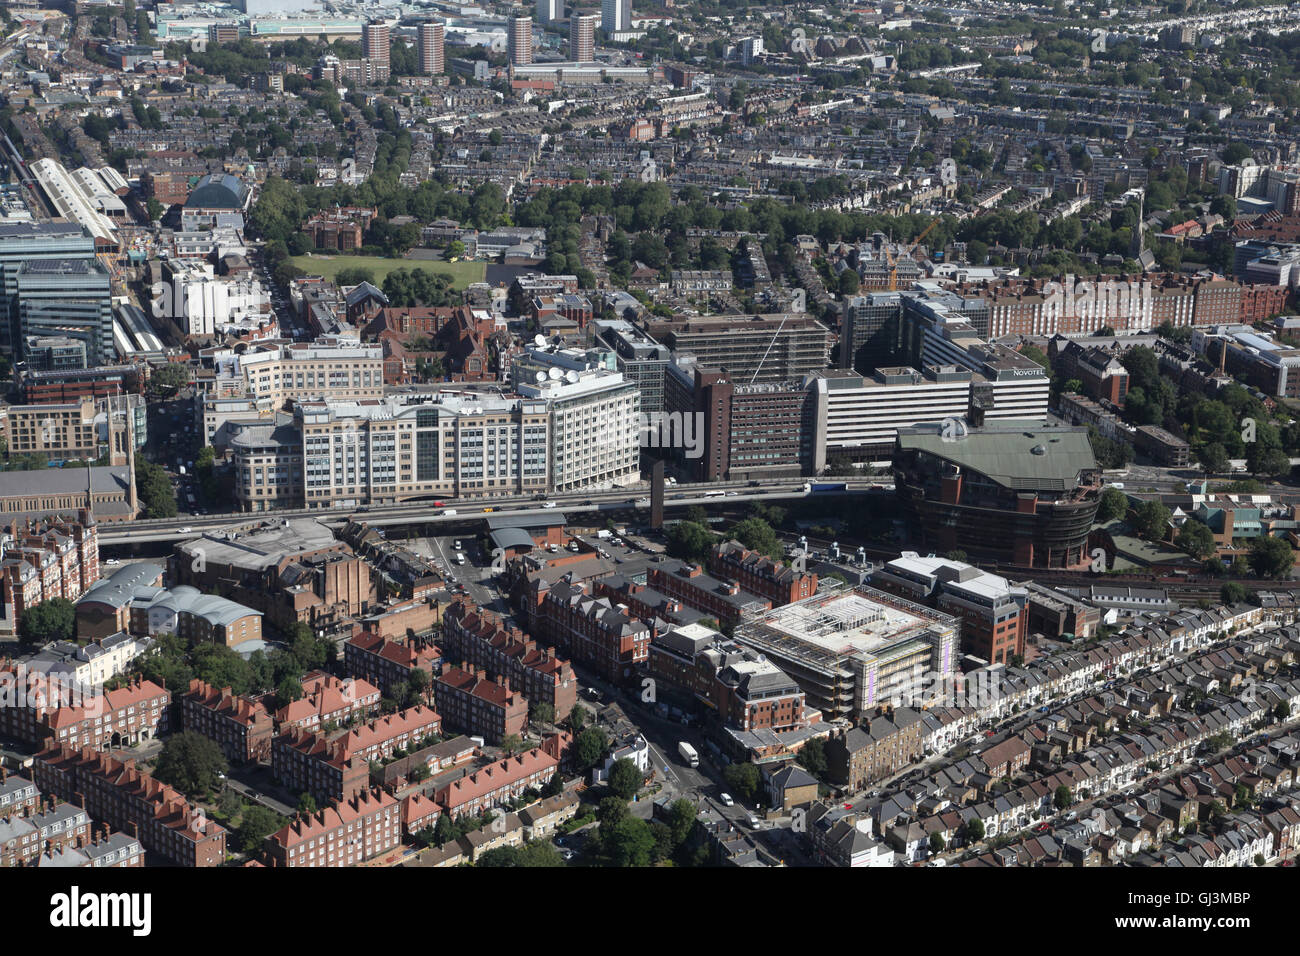 aerial view of Hammersmith, west London, including the A4 flyover, Broadway Shopping Centre, Novotel London West - Stock Image